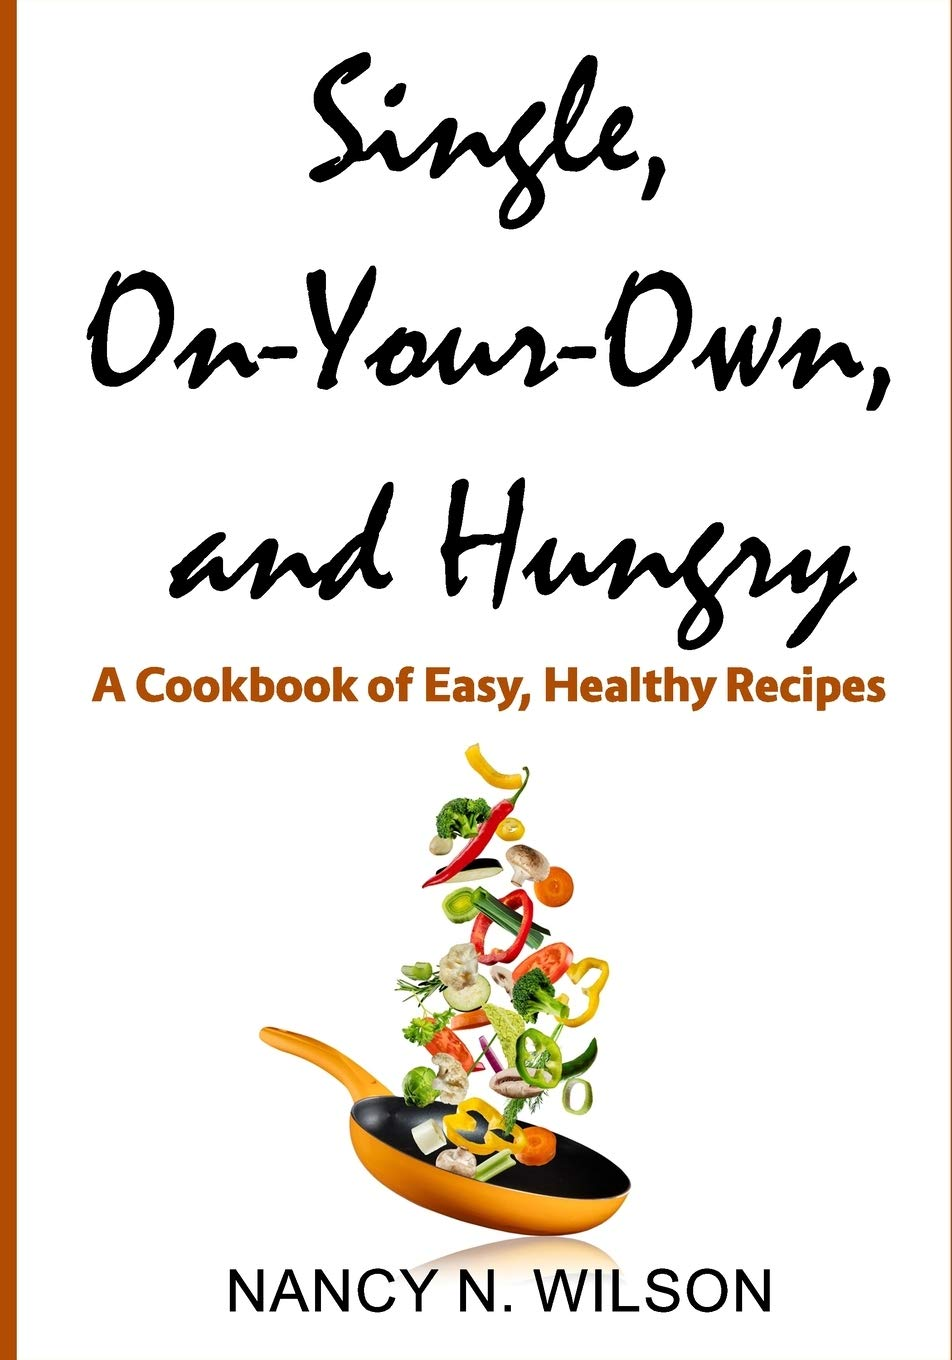 Image OfSingle, On-Your-Own, And Hungry: A Cookbook Of Easy, Healthy Recipes